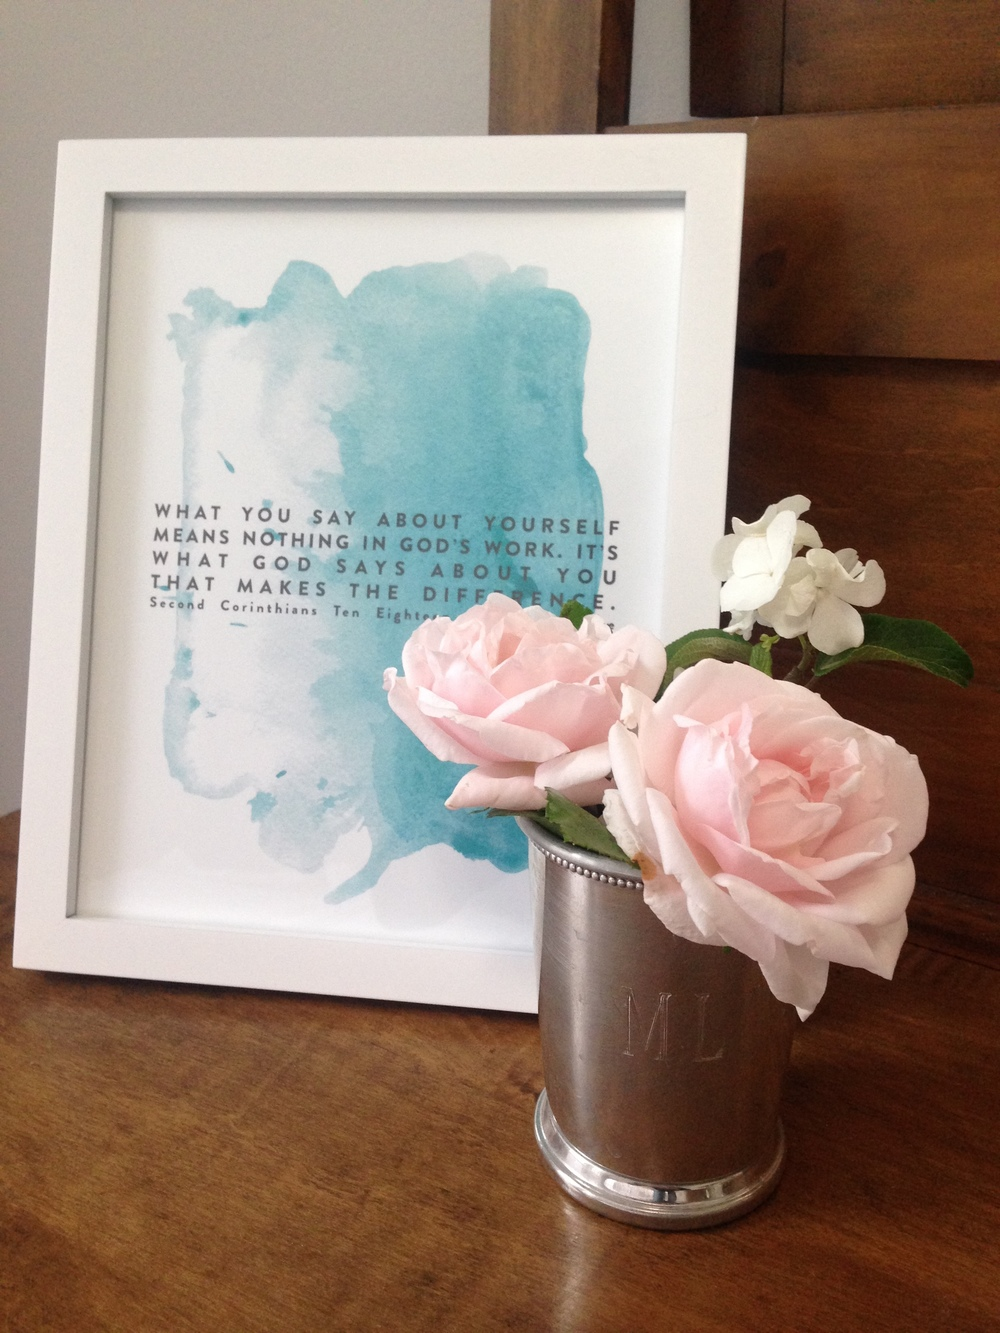 We want our guests to feel so loved when they stay in our home. One of the ways we accomplish this in our guest room is by putting fresh flowers from our garden and positive words to encourage them! (Print by  N  aptime Diaries )